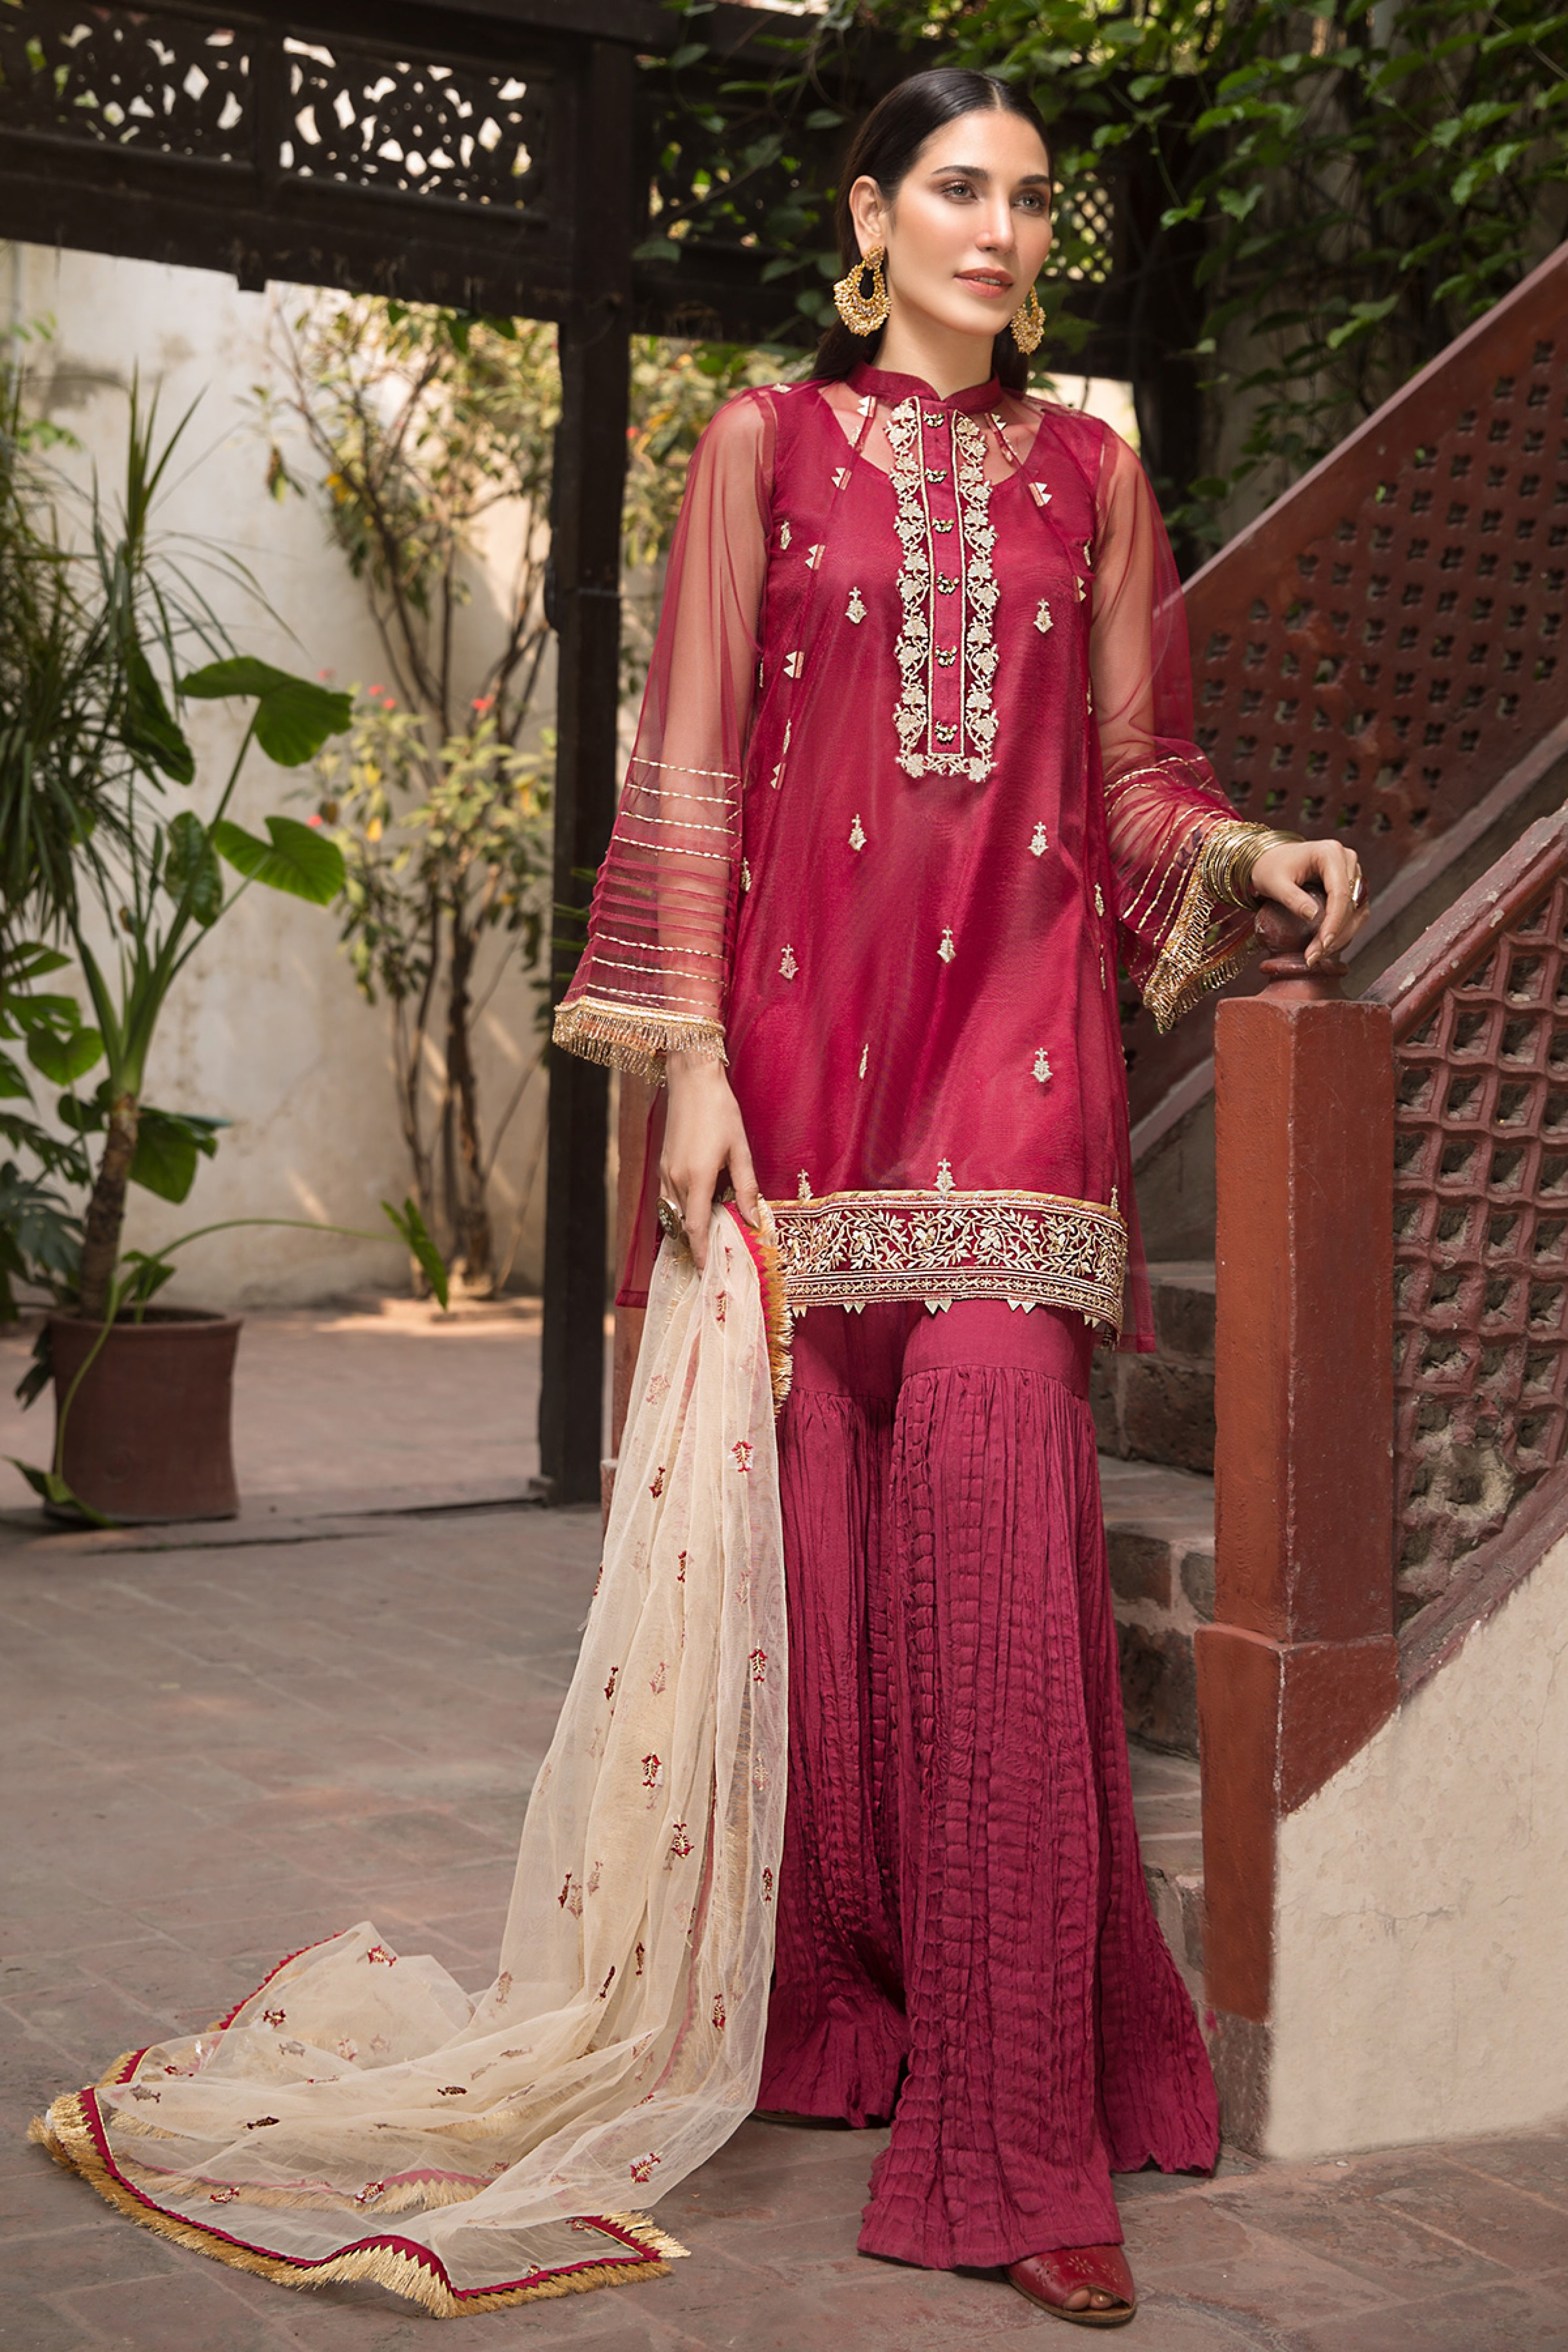 CASHMERE ROSE(EMBROIDERED SHIRT & DUPATTA)